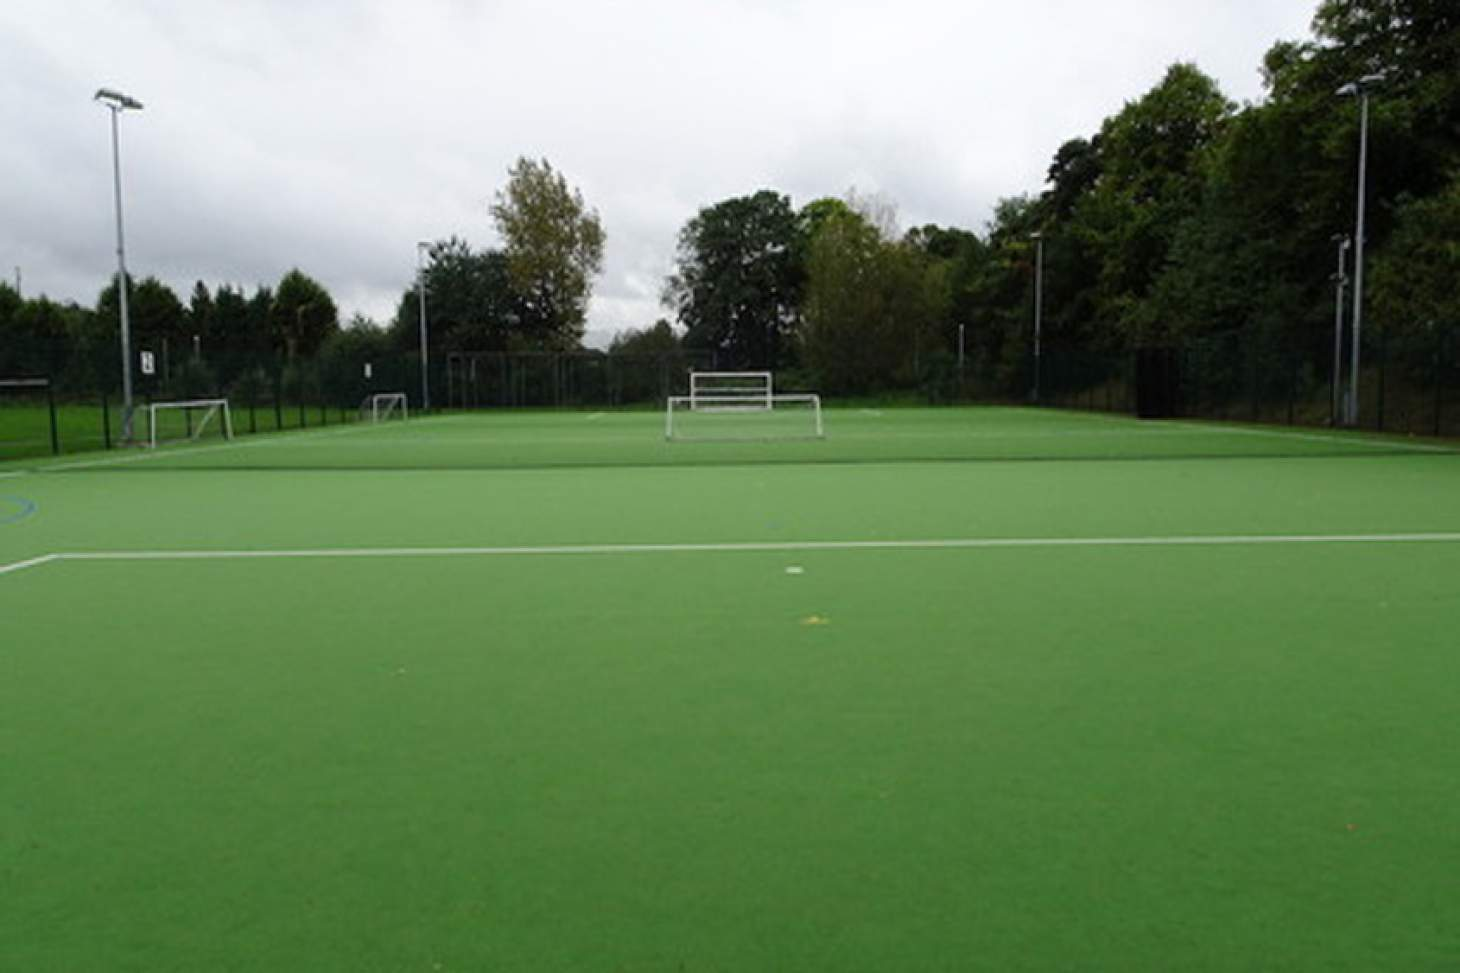 The Barlow RC High School 11 a side | Astroturf football pitch